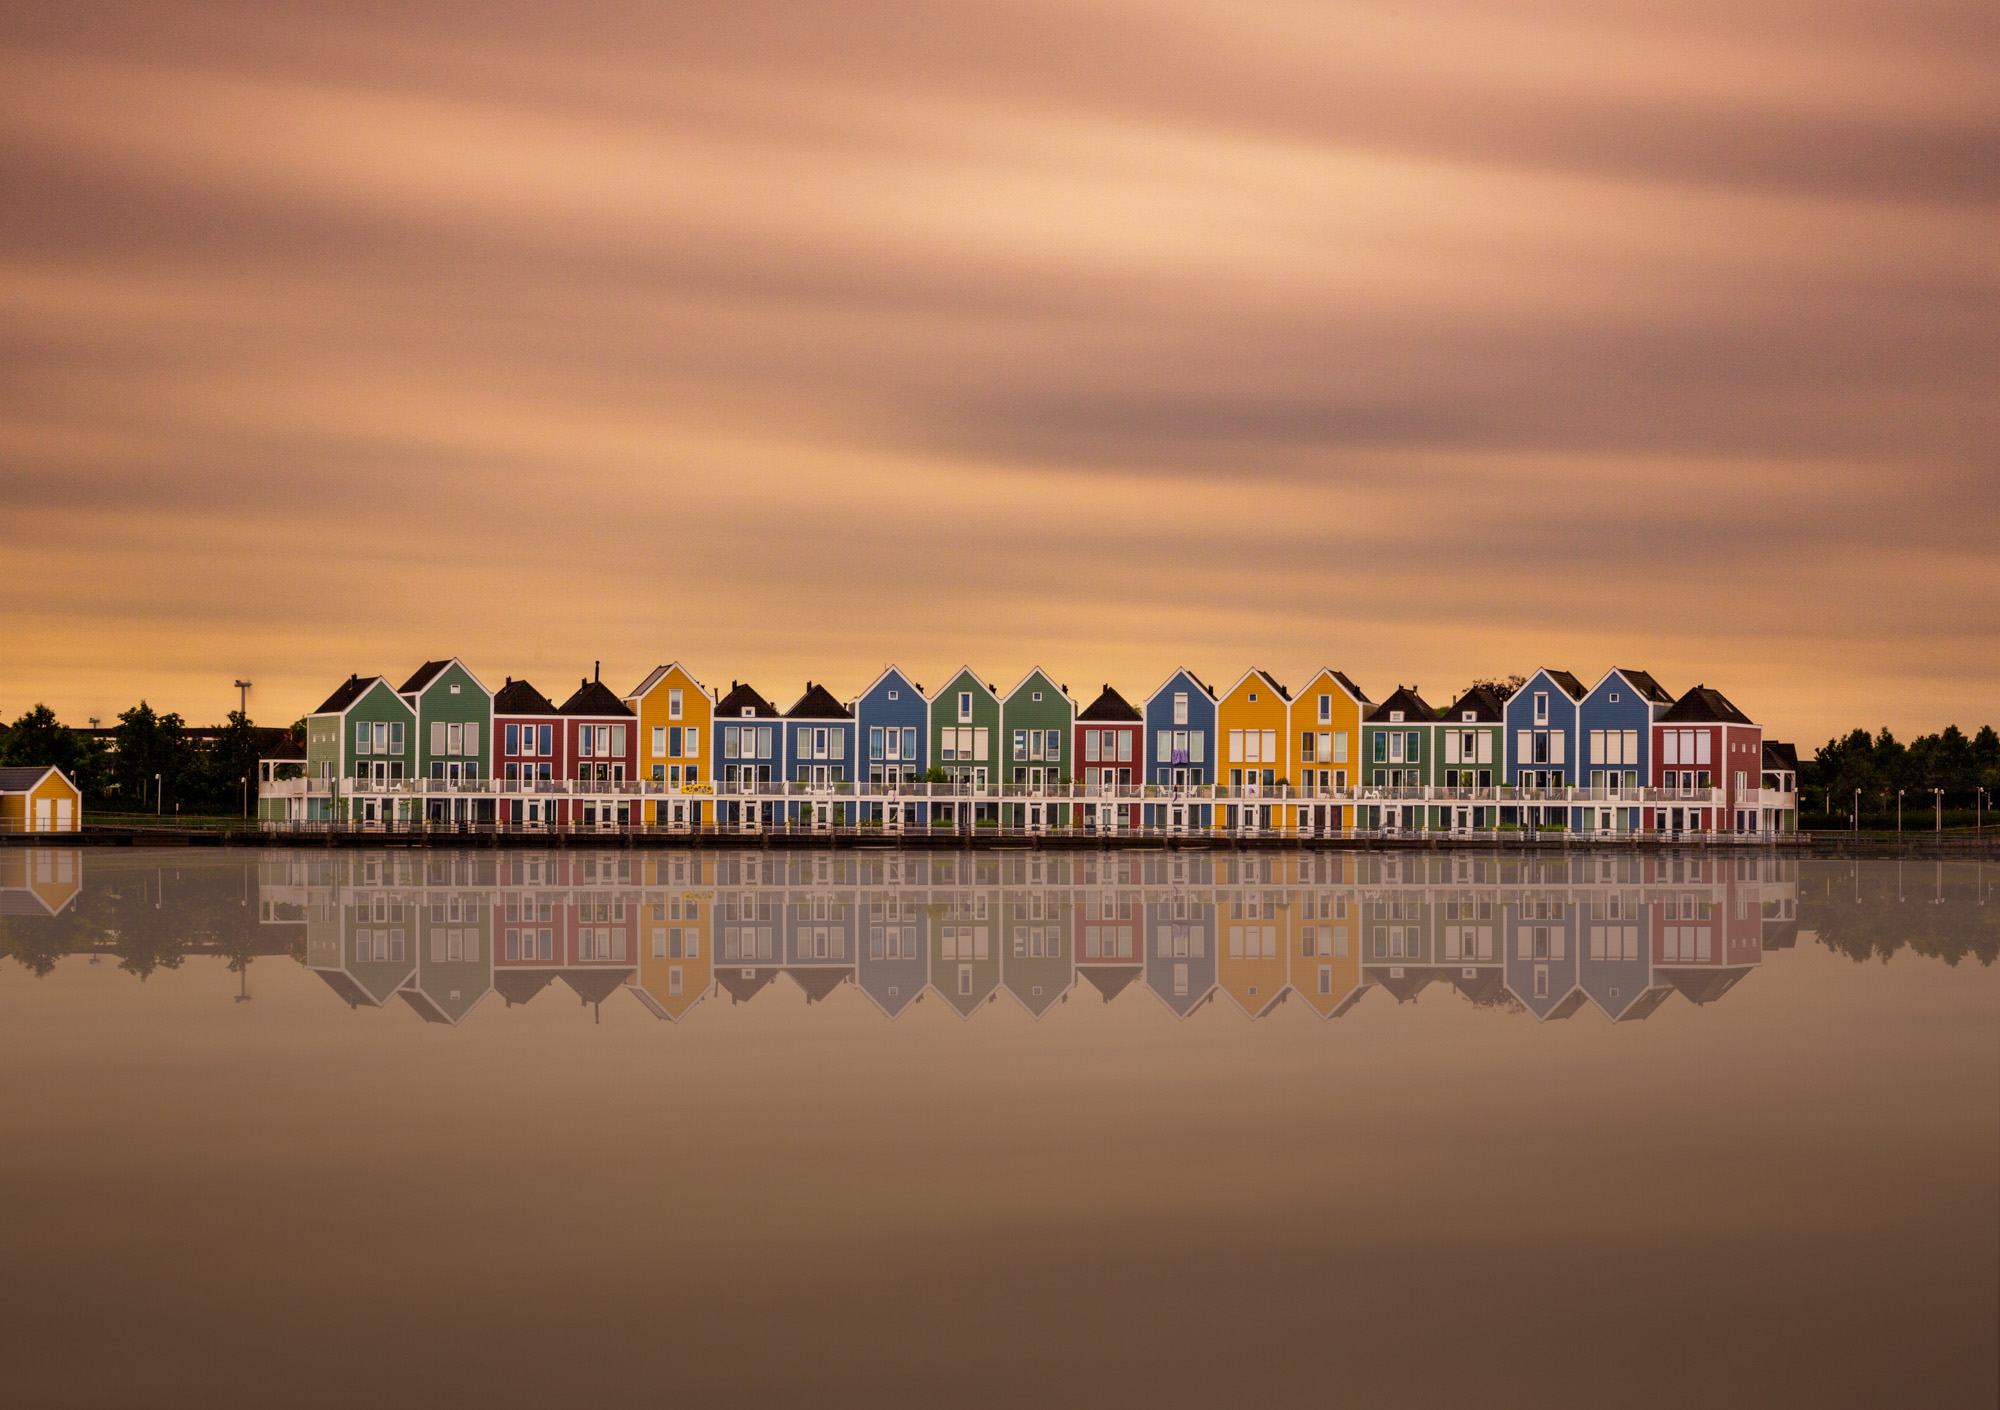 long exposure photograph of the Rainbow Houses in The Netherlands